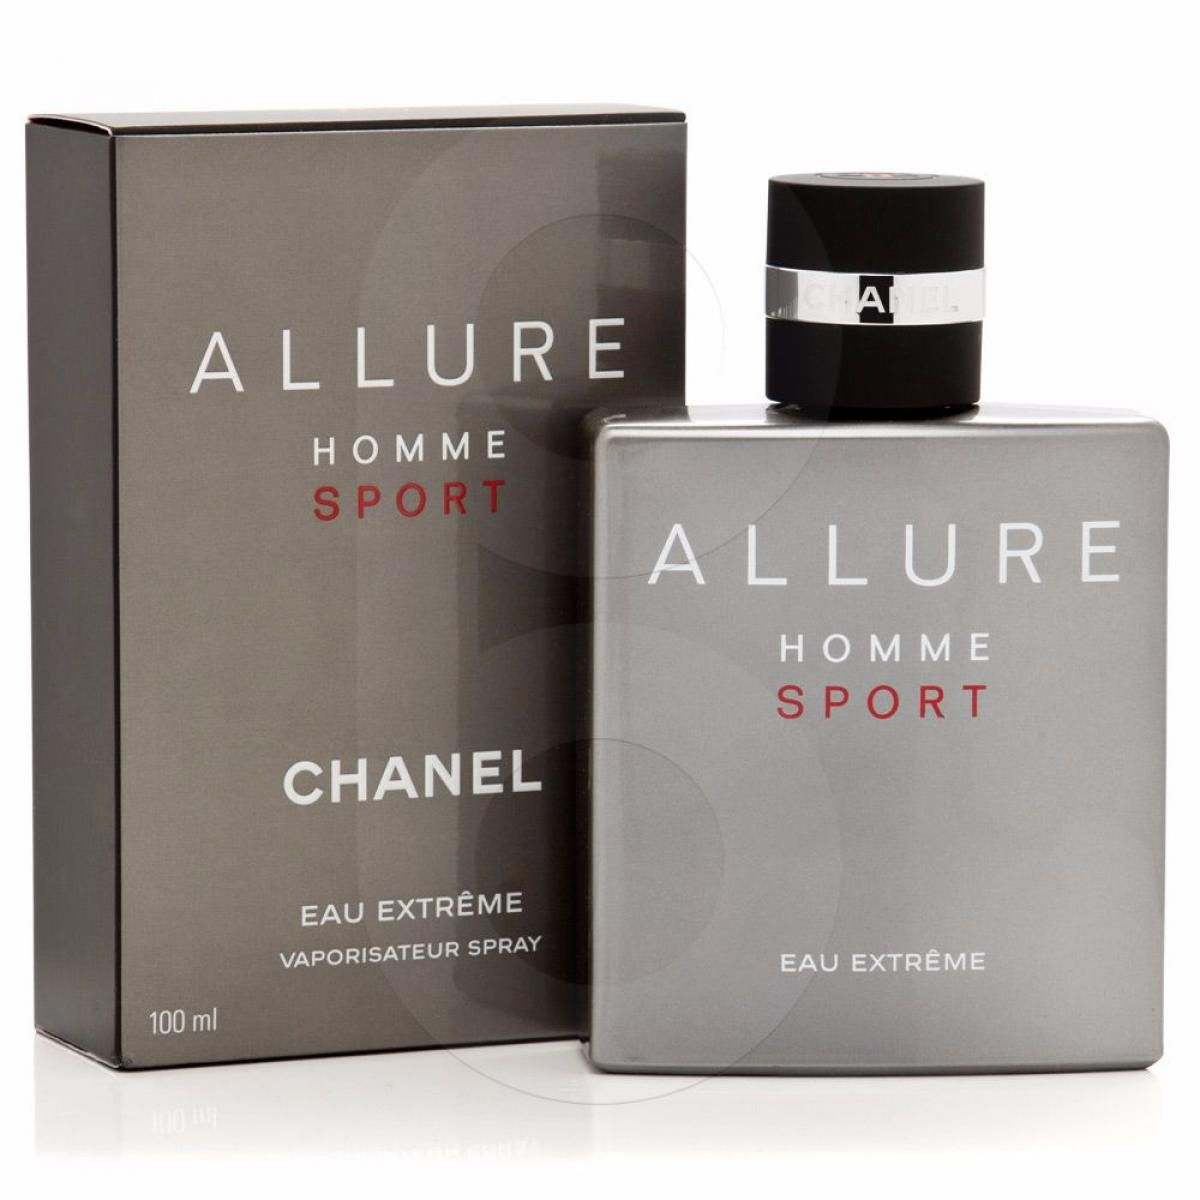 Chanel Allure Homme Sport Extreme For Men 100ml Chanel